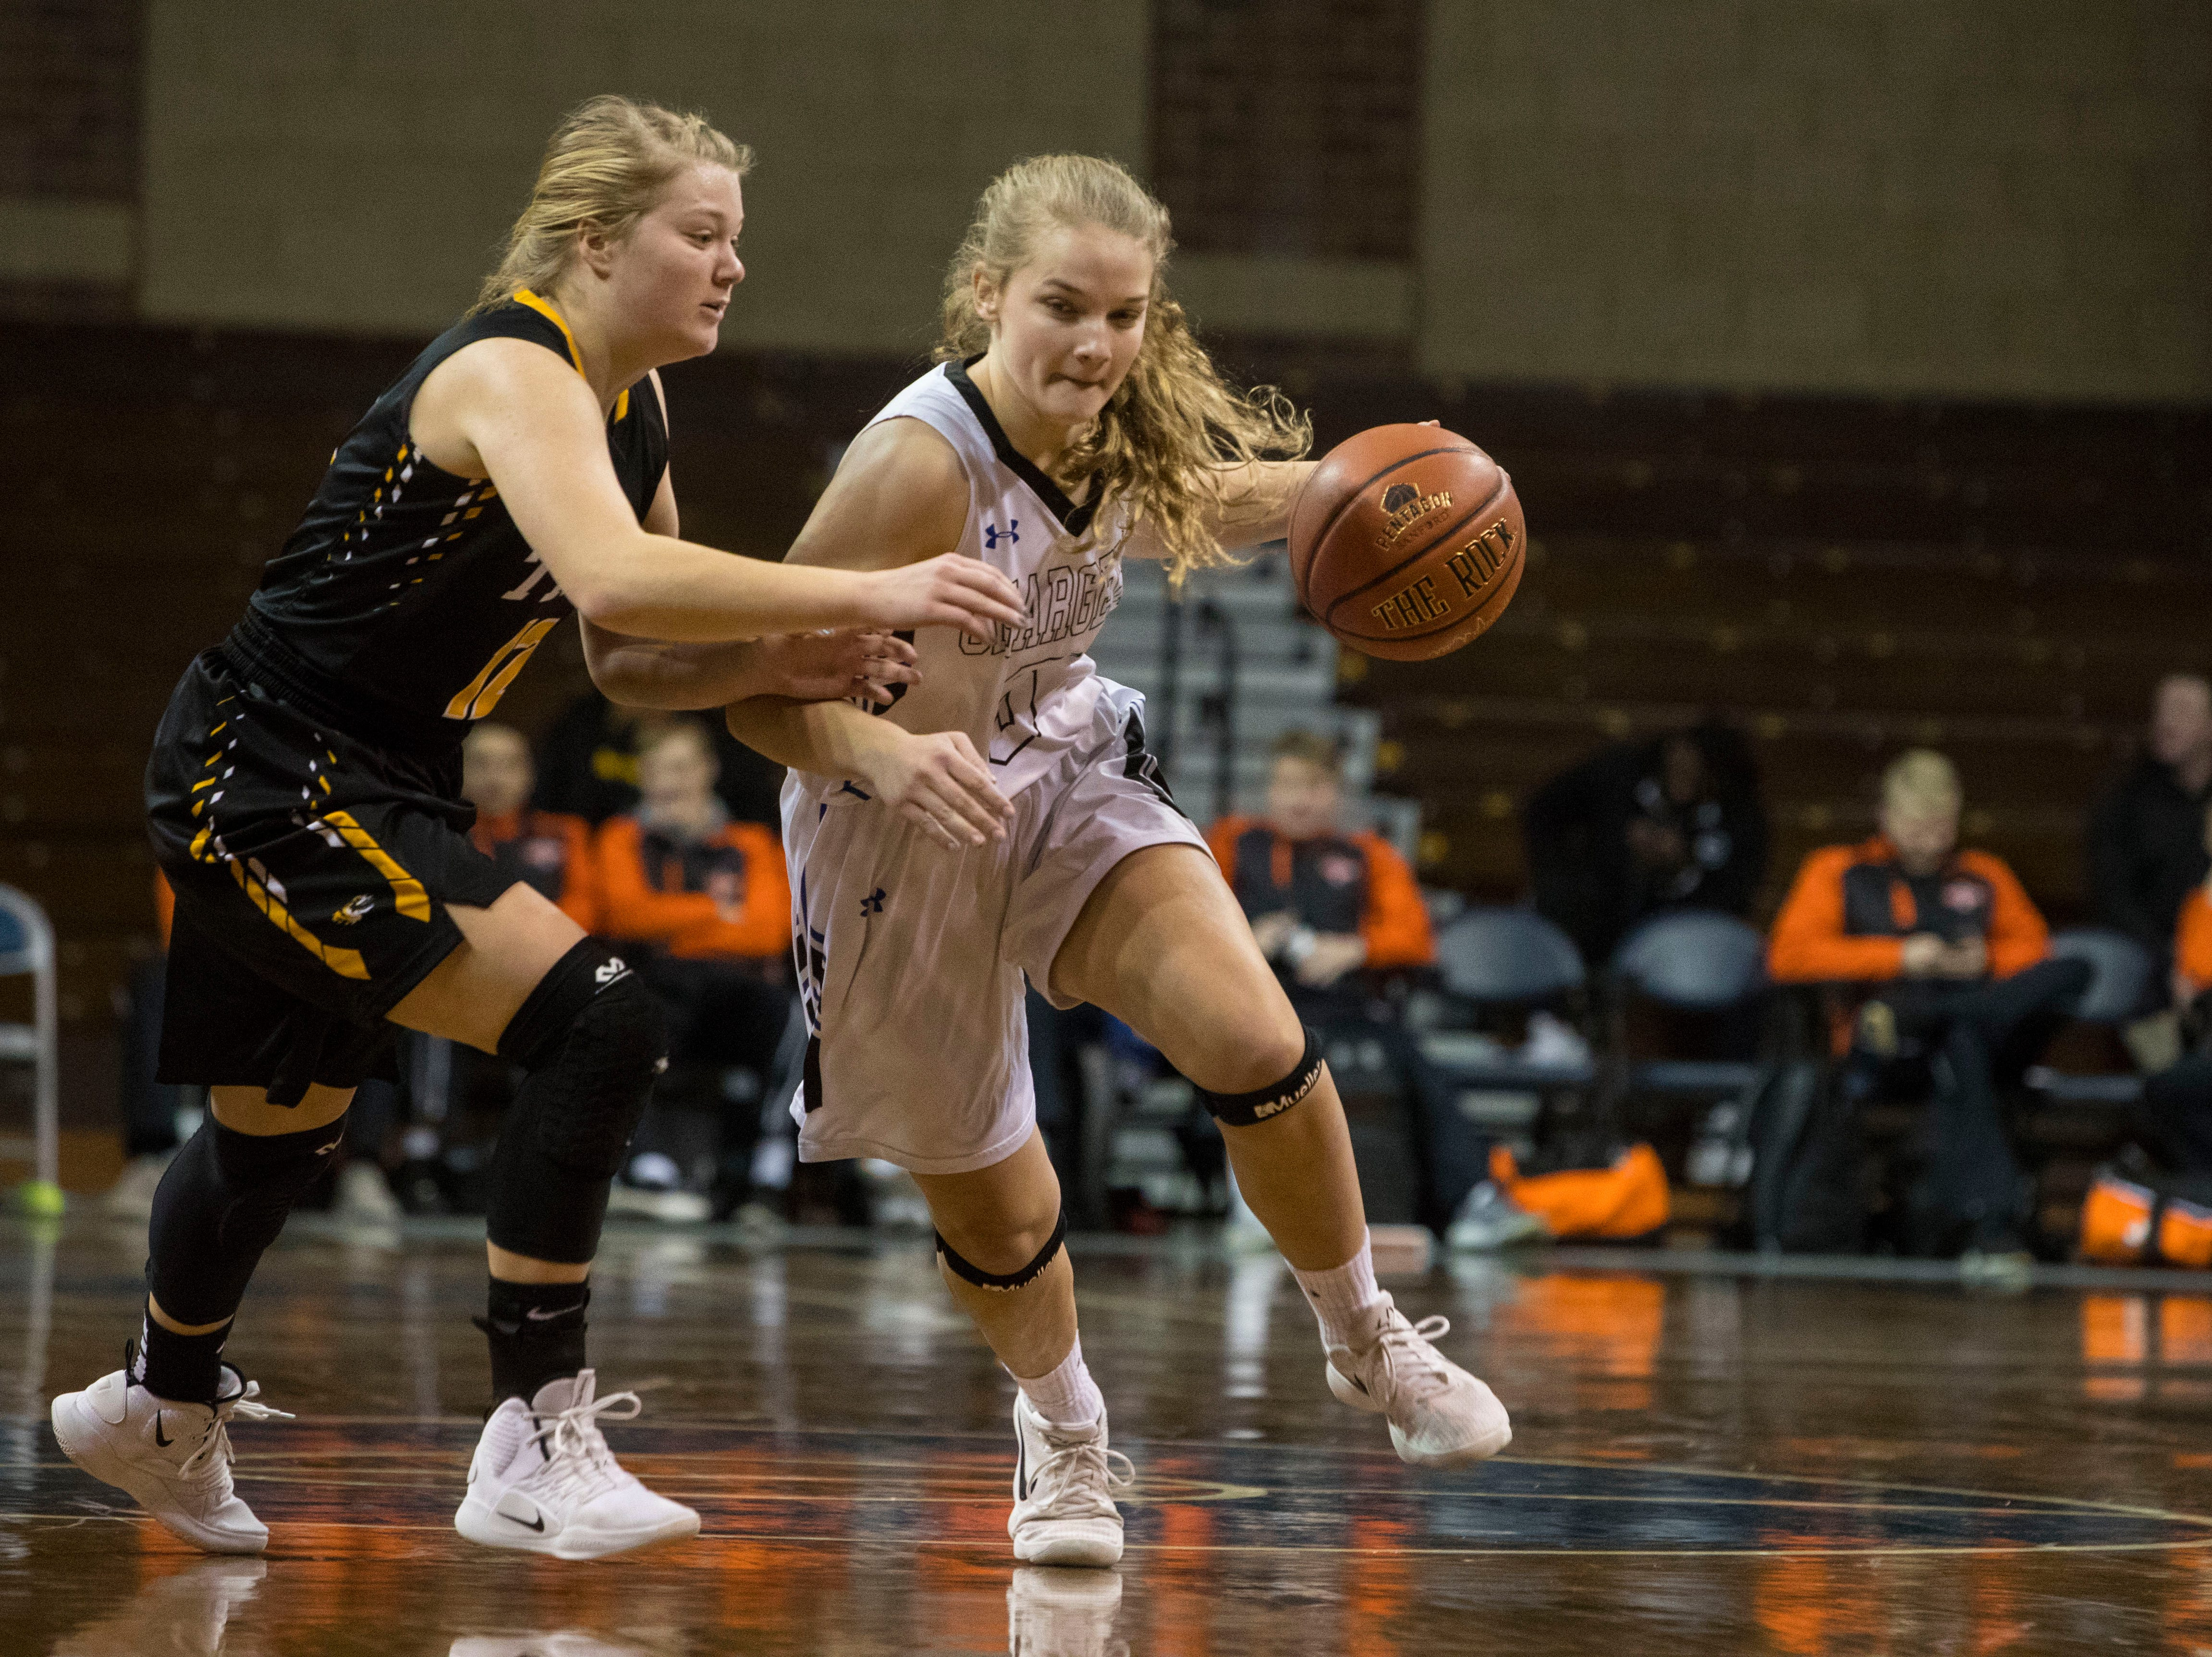 Sioux Falls Christian's Maddie DeJong (5) dribbles the ball past Hutchinson's Michaela Stamer (12) at the Hoop City Classic at the Sanford Pentagon in Sioux Falls, S.D., Saturday, Dec. 29, 2018.